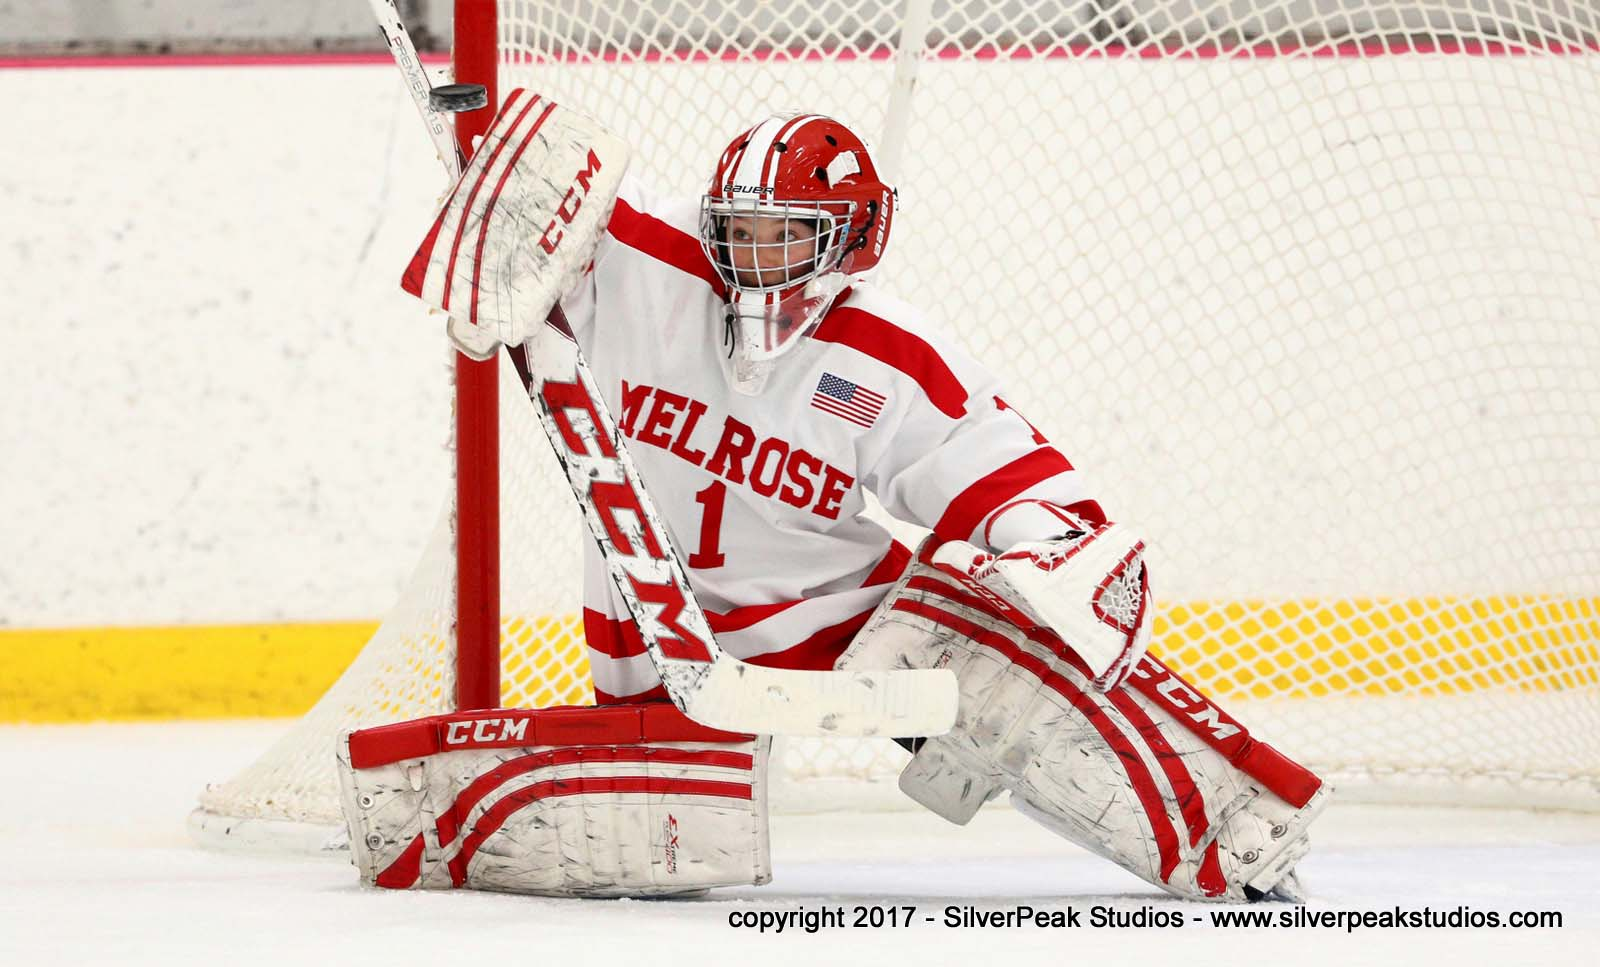 Melrose-Goalie-24-36